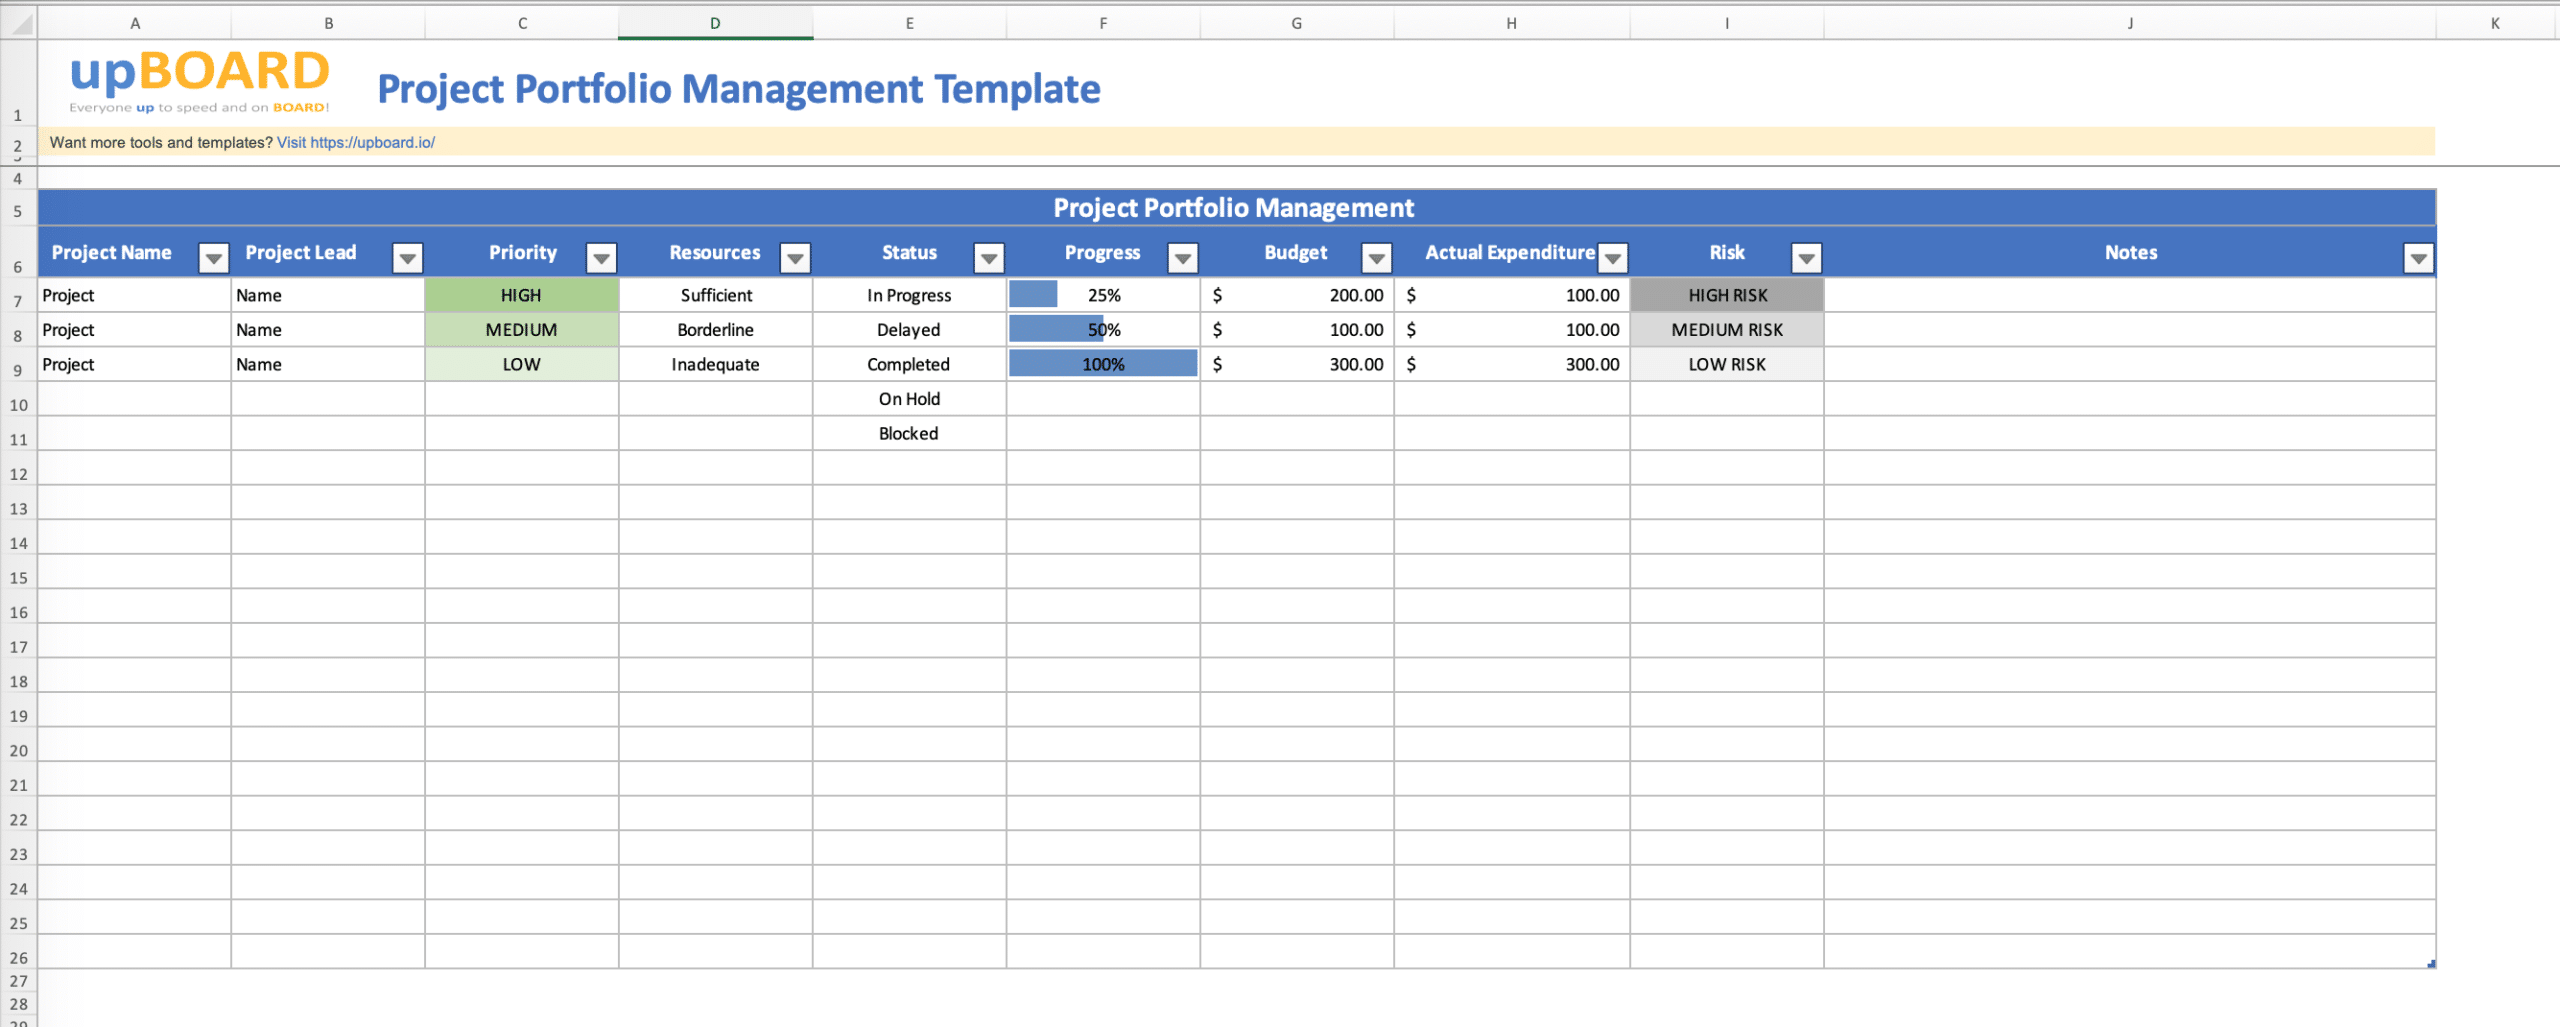 Full Size of Inventory Spreadsheet Car Loan Template Excel Project Management